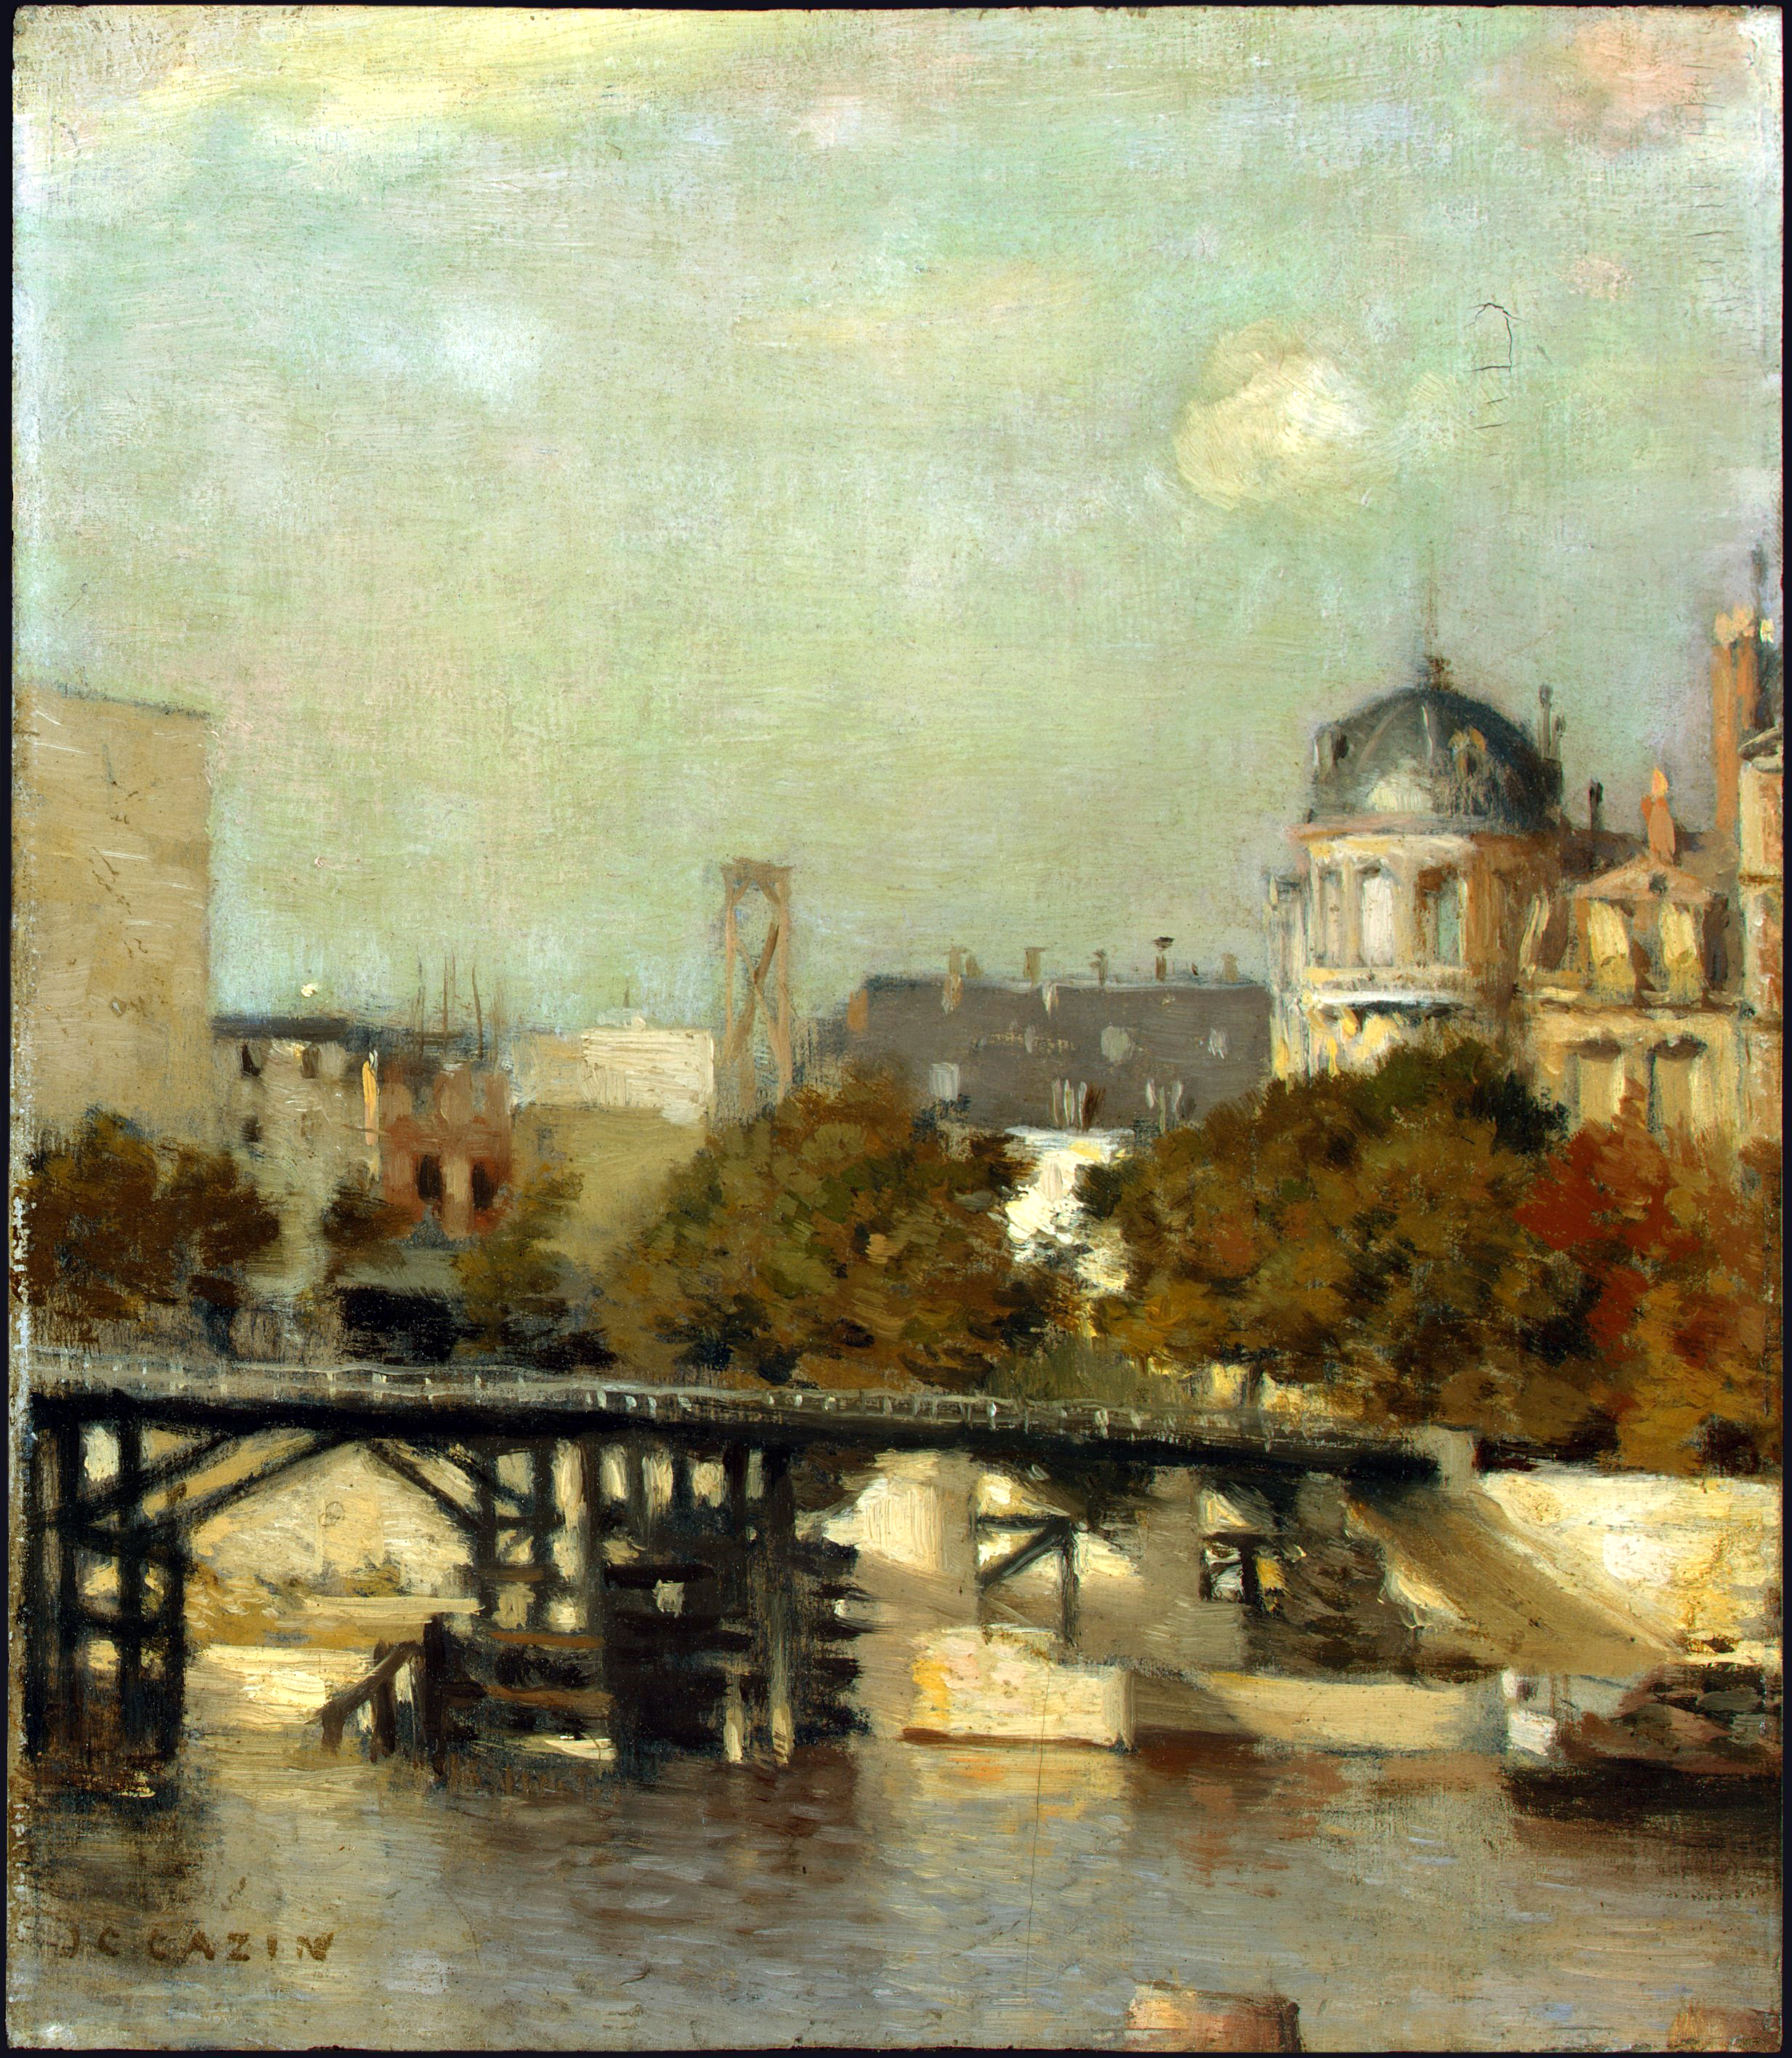 Cazin.Paris_Scene_with_Bridge,_Jean-Charles_Cazin